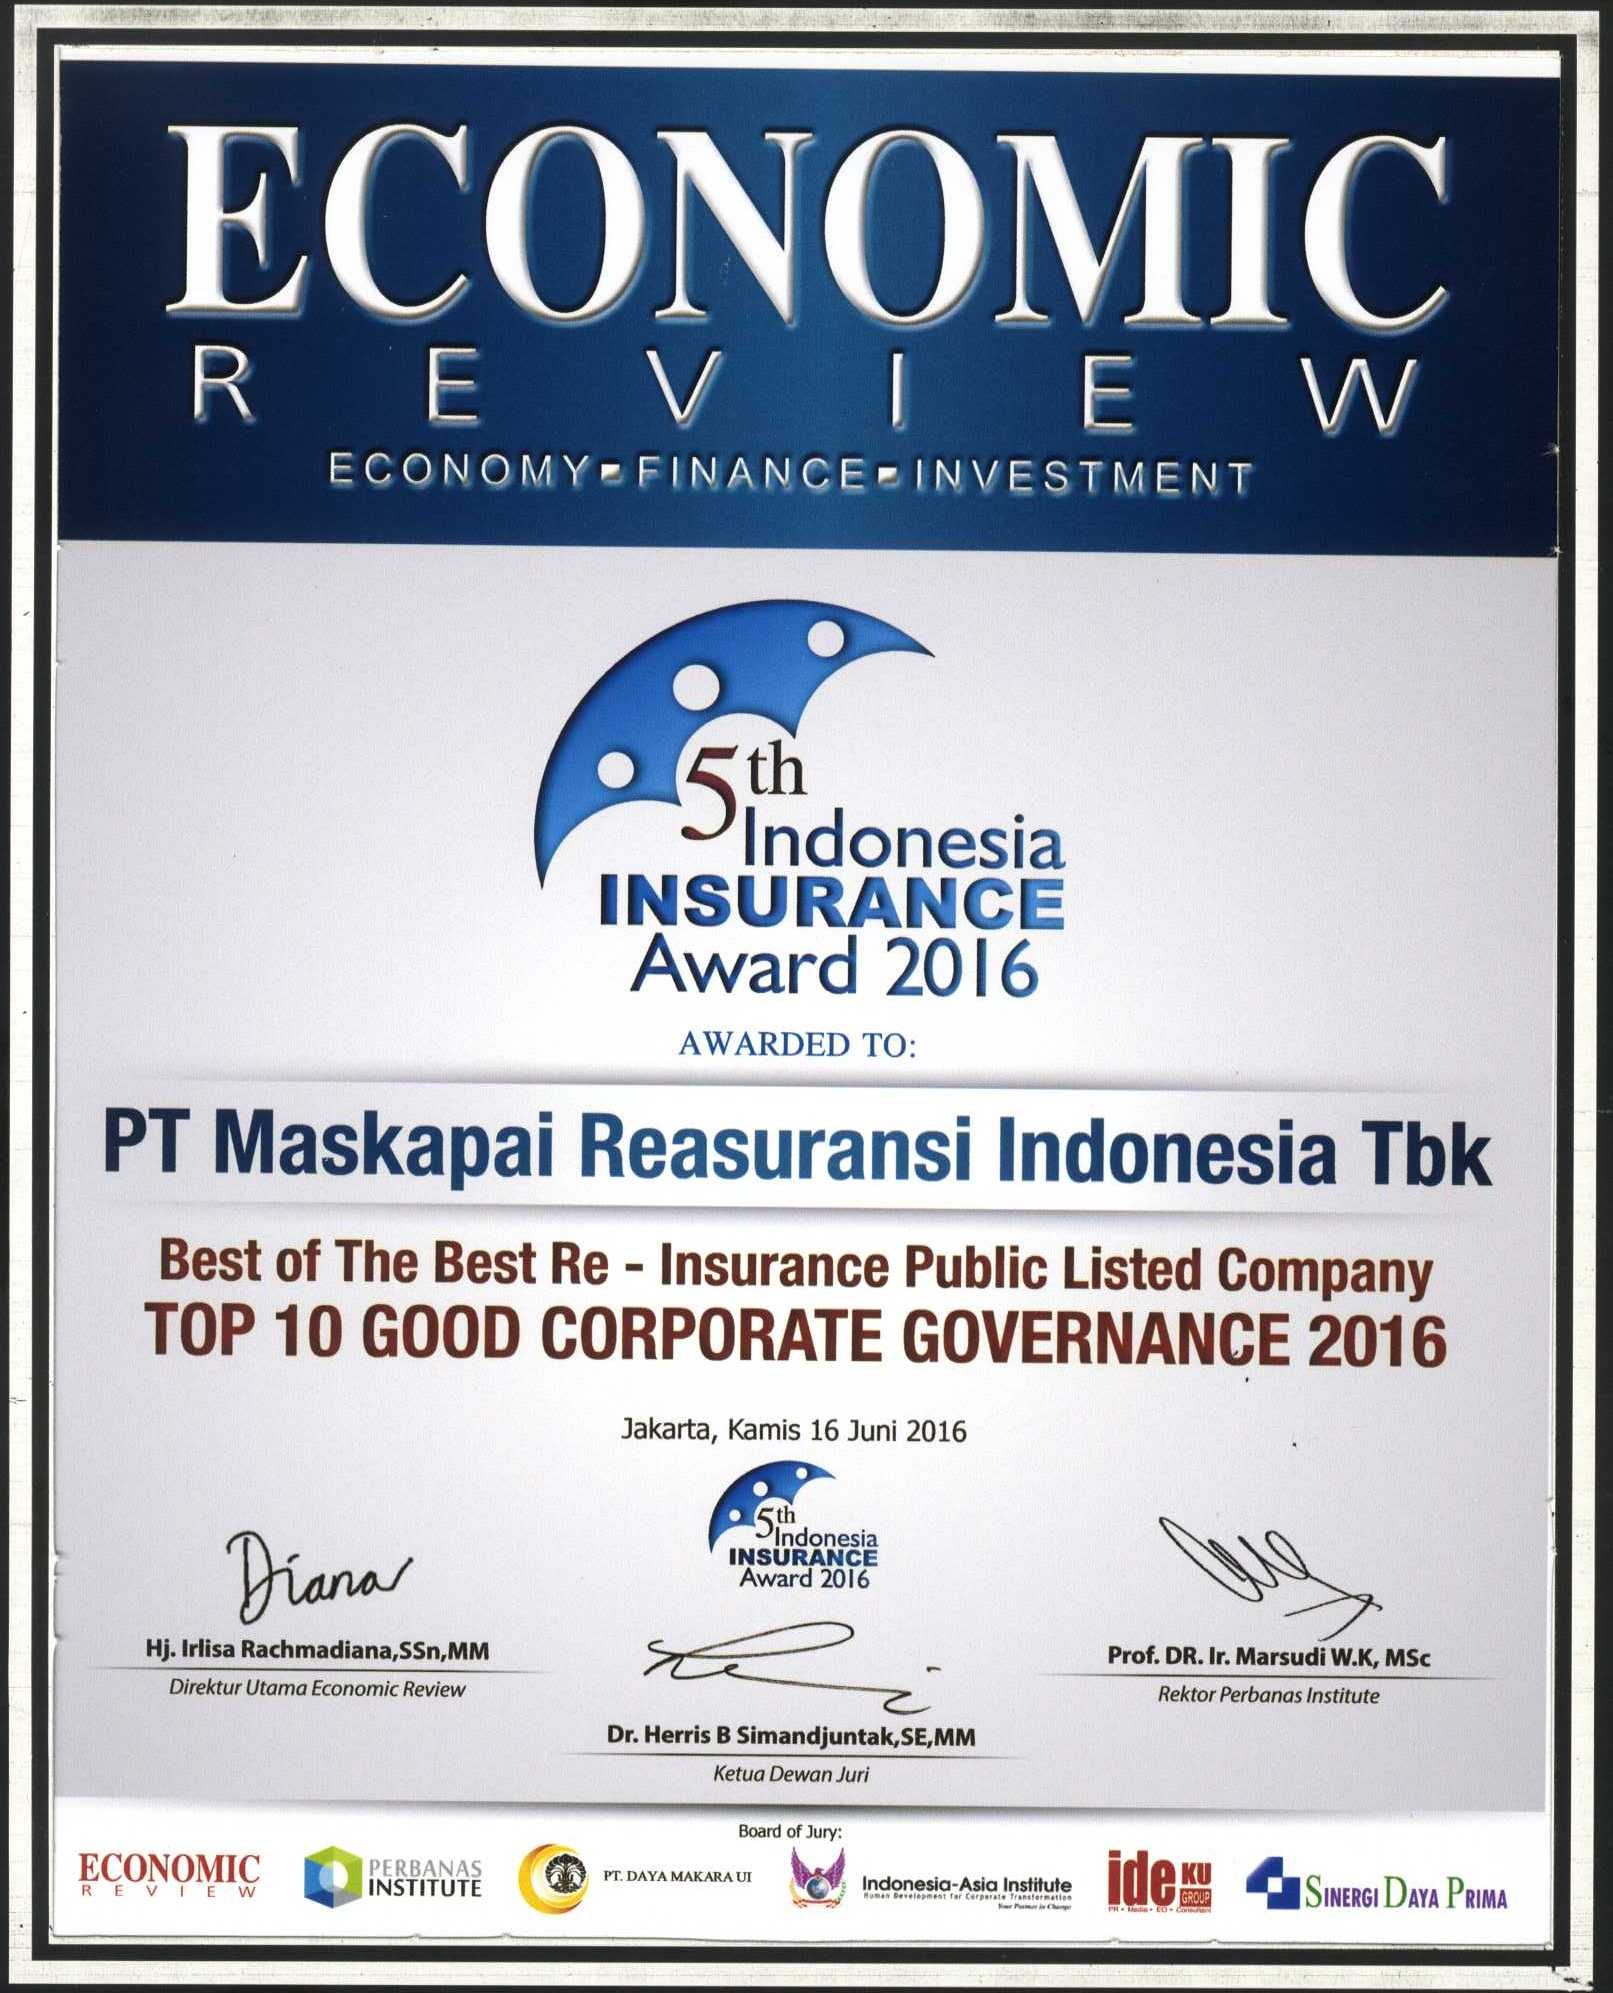 Majalah Economic Review : Top 10 Good Corporate Governance 2016 - 5th Indonesia Insurance Awad 2016